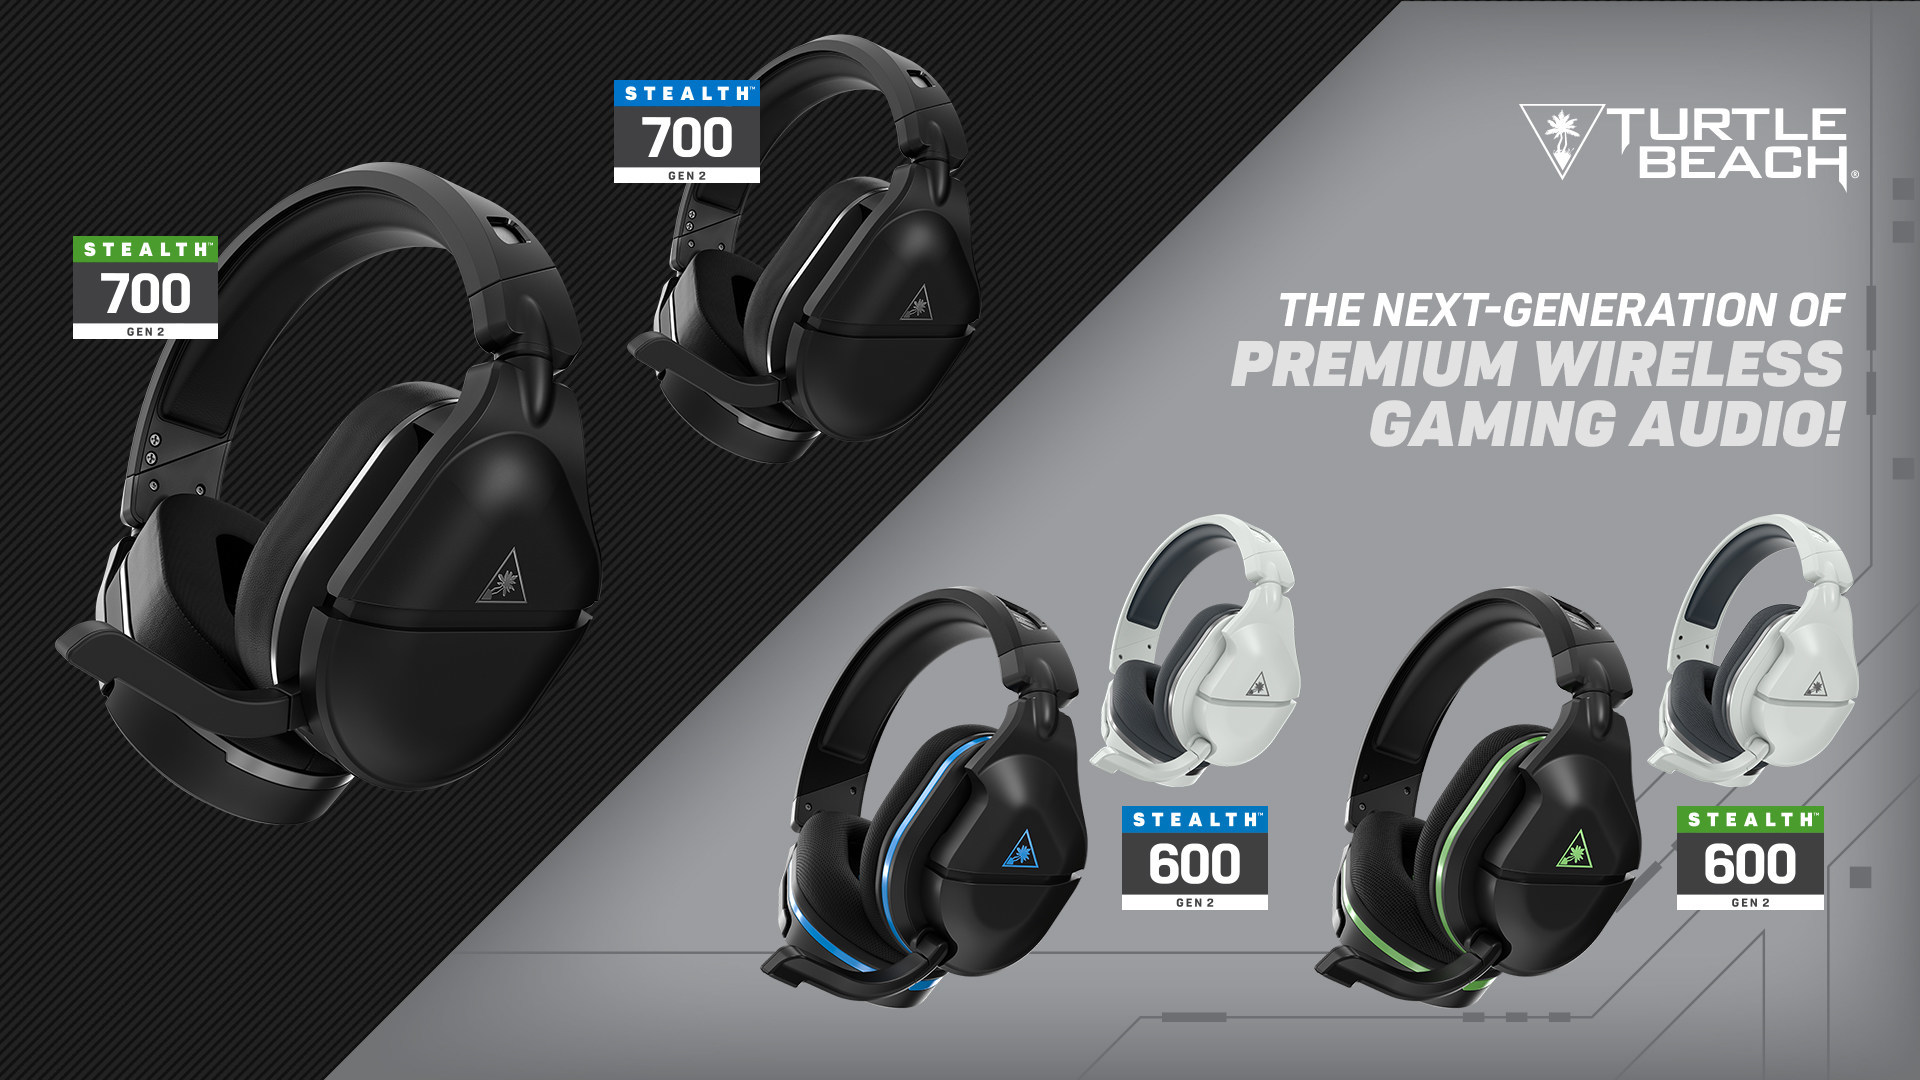 Turtle Beach's New Stealth 700 Gen 2 And Stealth 600 Gen 2 Headsets For Xbox  One, Xbox Series X | S, PlayStation 4, And PlayStation 5 Available At  Retail This Sunday, September 20, 2020